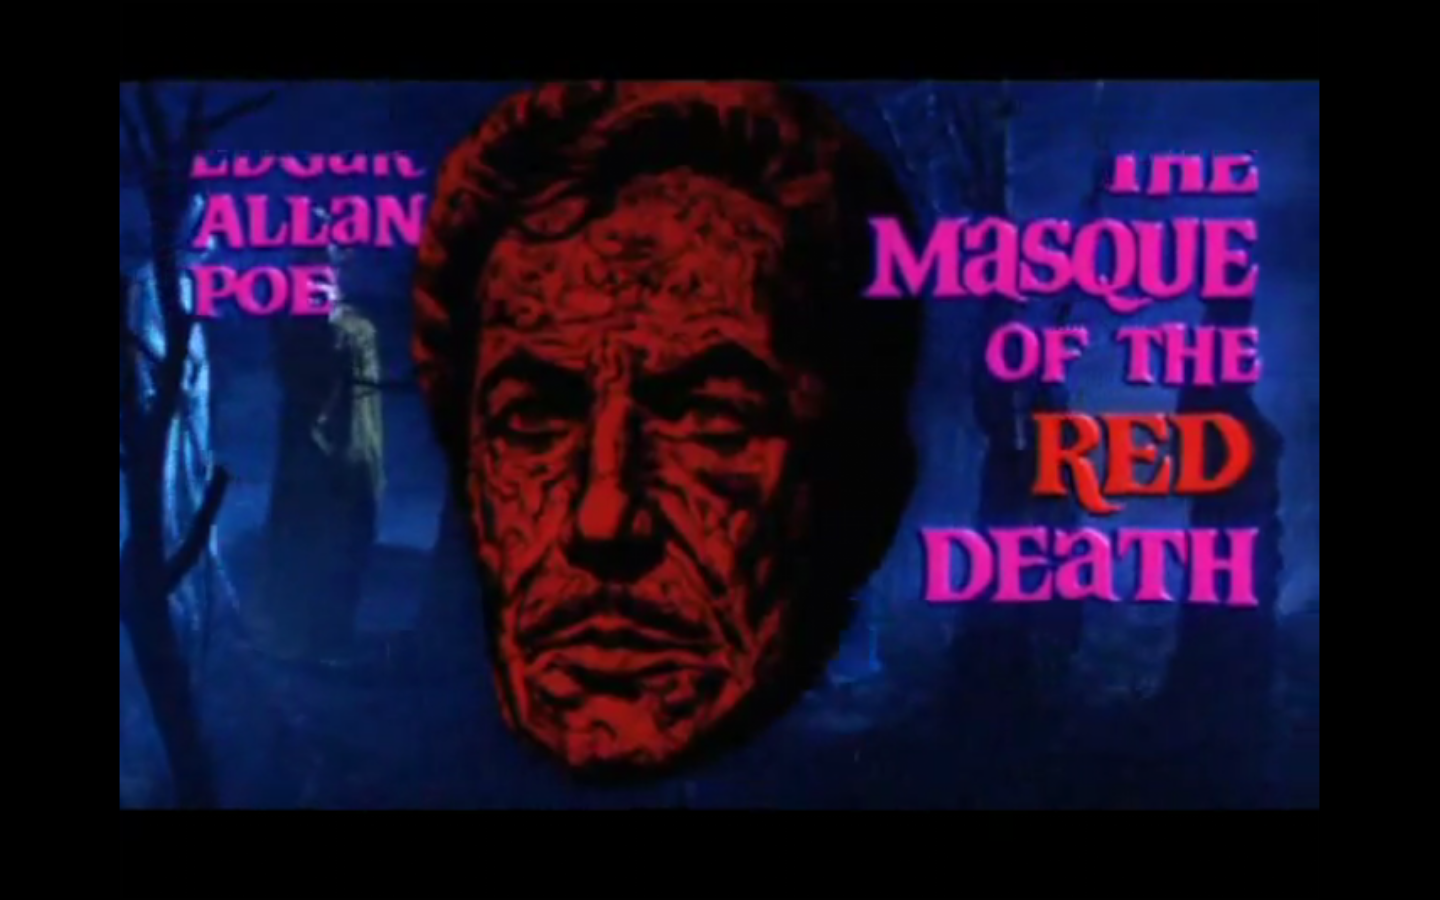 the masque of the red death compared and contrasted to the movie